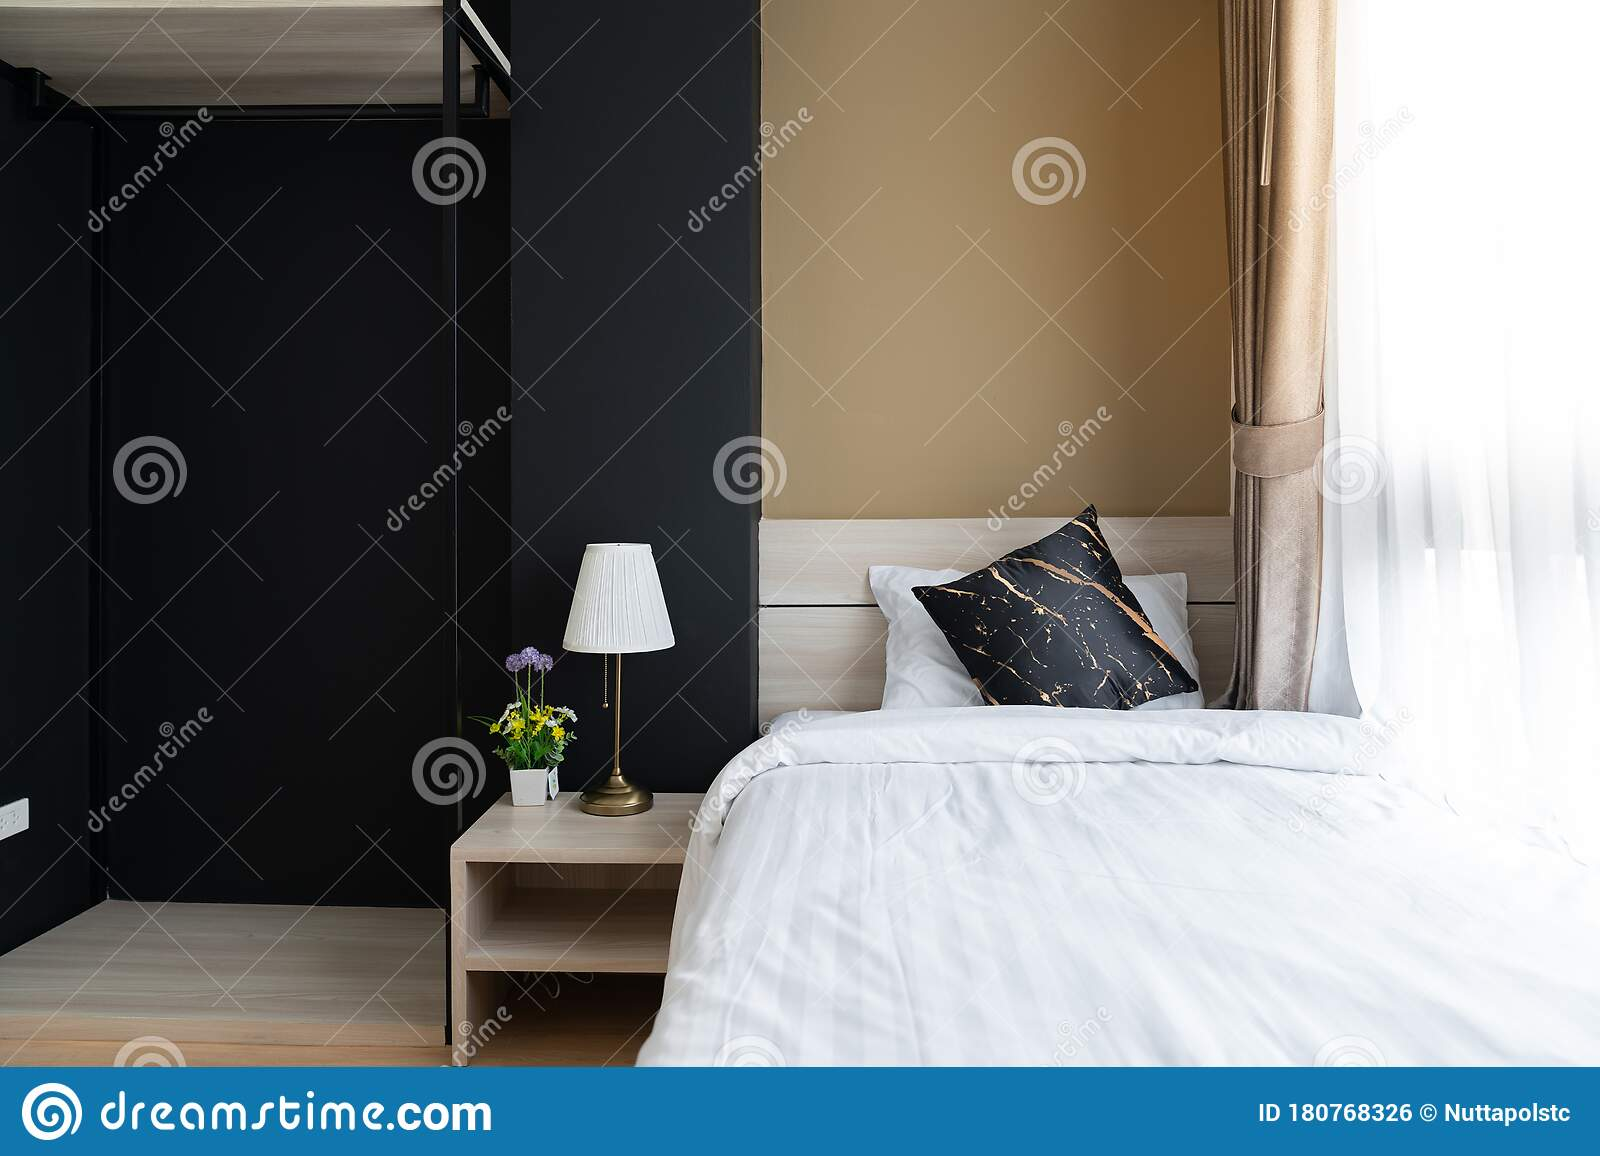 Stylish Bedroom Corner With Wooden Headboard And Bed With Soft Pillows Setting With Navy Blue And Yellow Painted Wall On The Stock Photo Image Of Decor Blanket 180768326